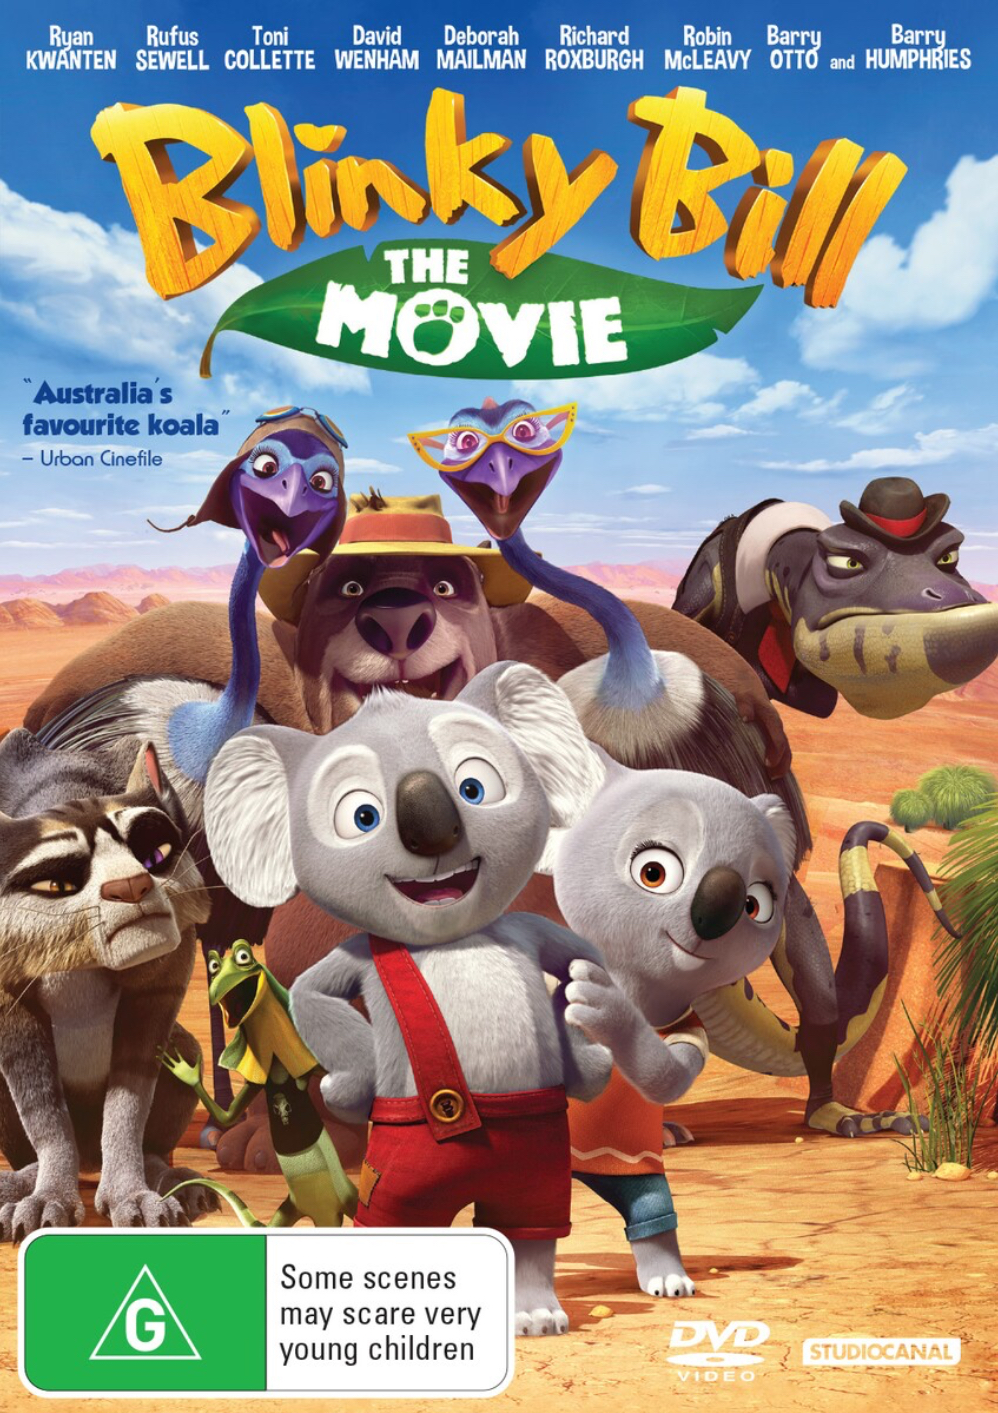 Blinky Bill The Movie/Gallery